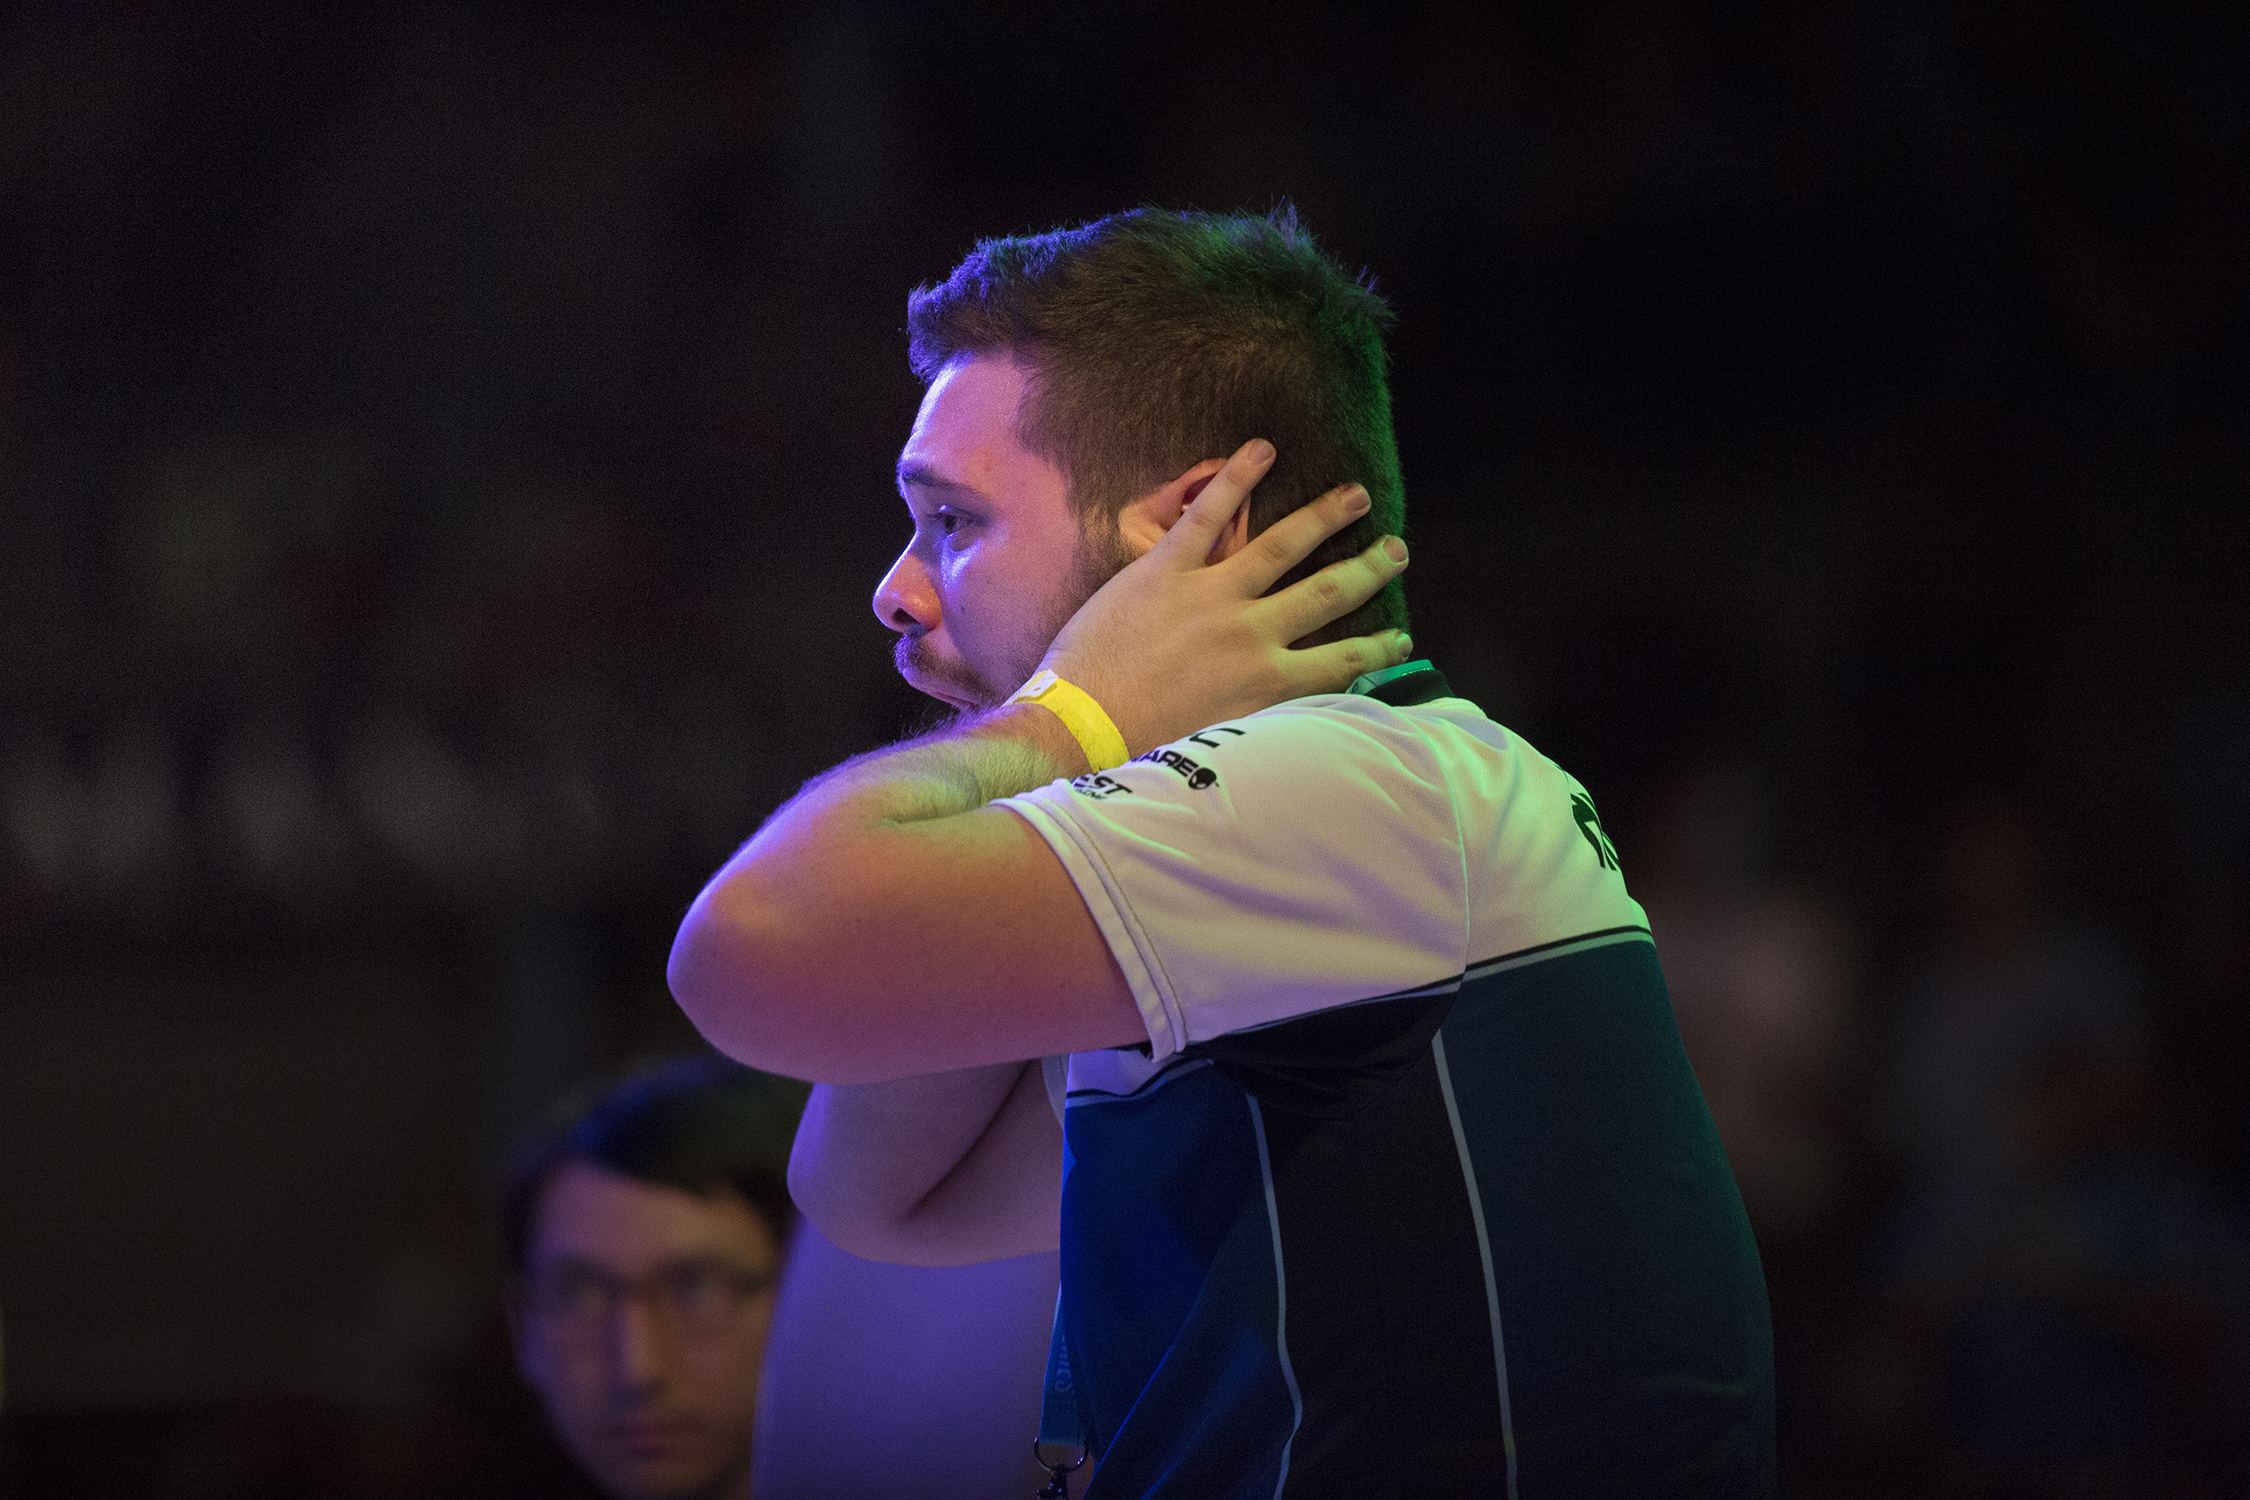 "An emotional evening for the new world champion, Juan ""Hungrybox"" Debiedma, after winning the Smash Bros. Melee at the EVO Championship Series 2016 in Las Vegas, Nevada. © Gail Fisher for ESPN"